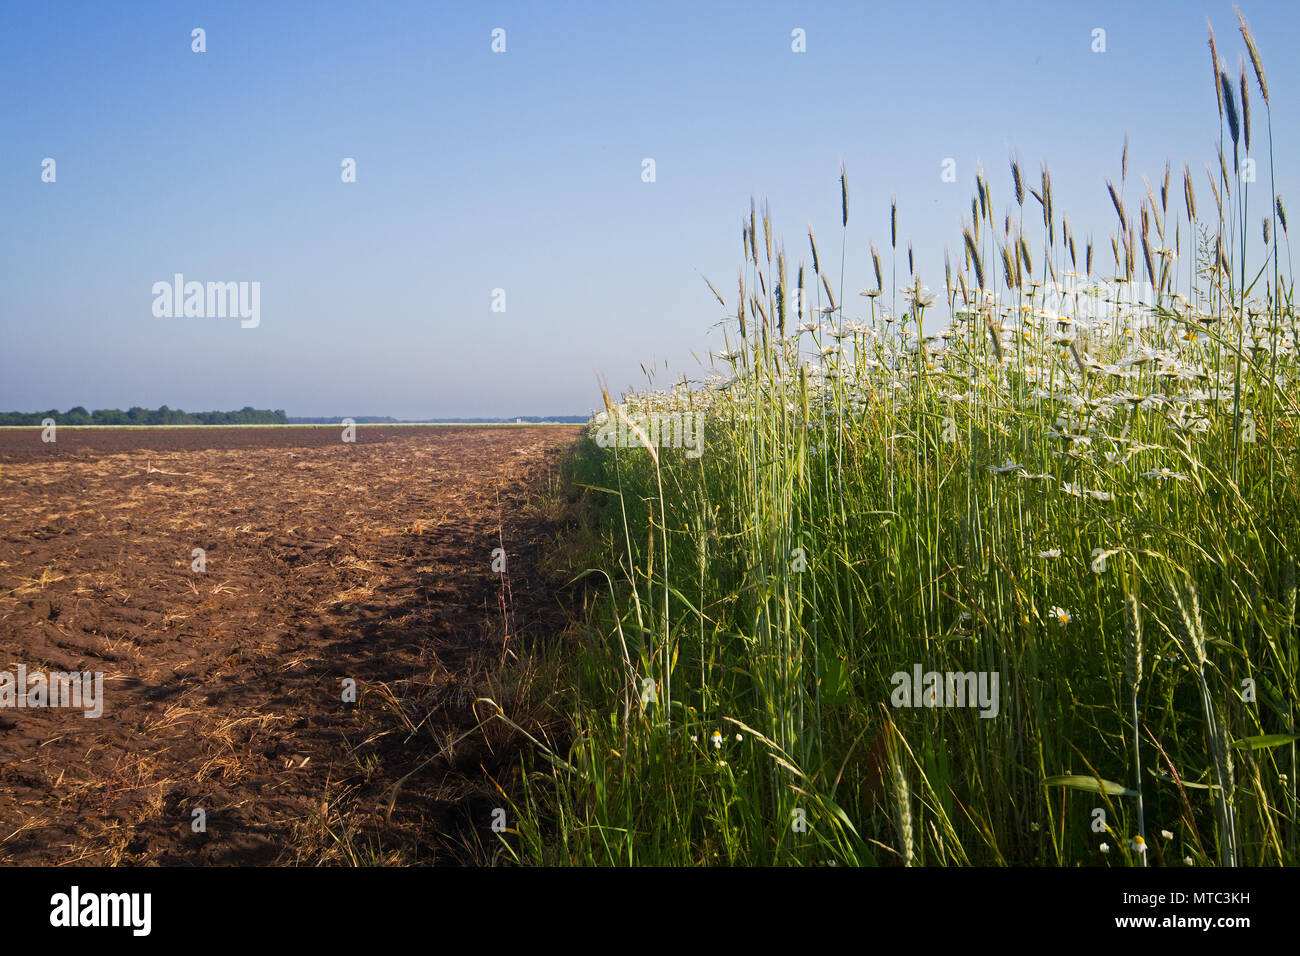 Organic pest control: field of flowers, sown to attract beneficial insects, next to an agricultural field - Stock Image